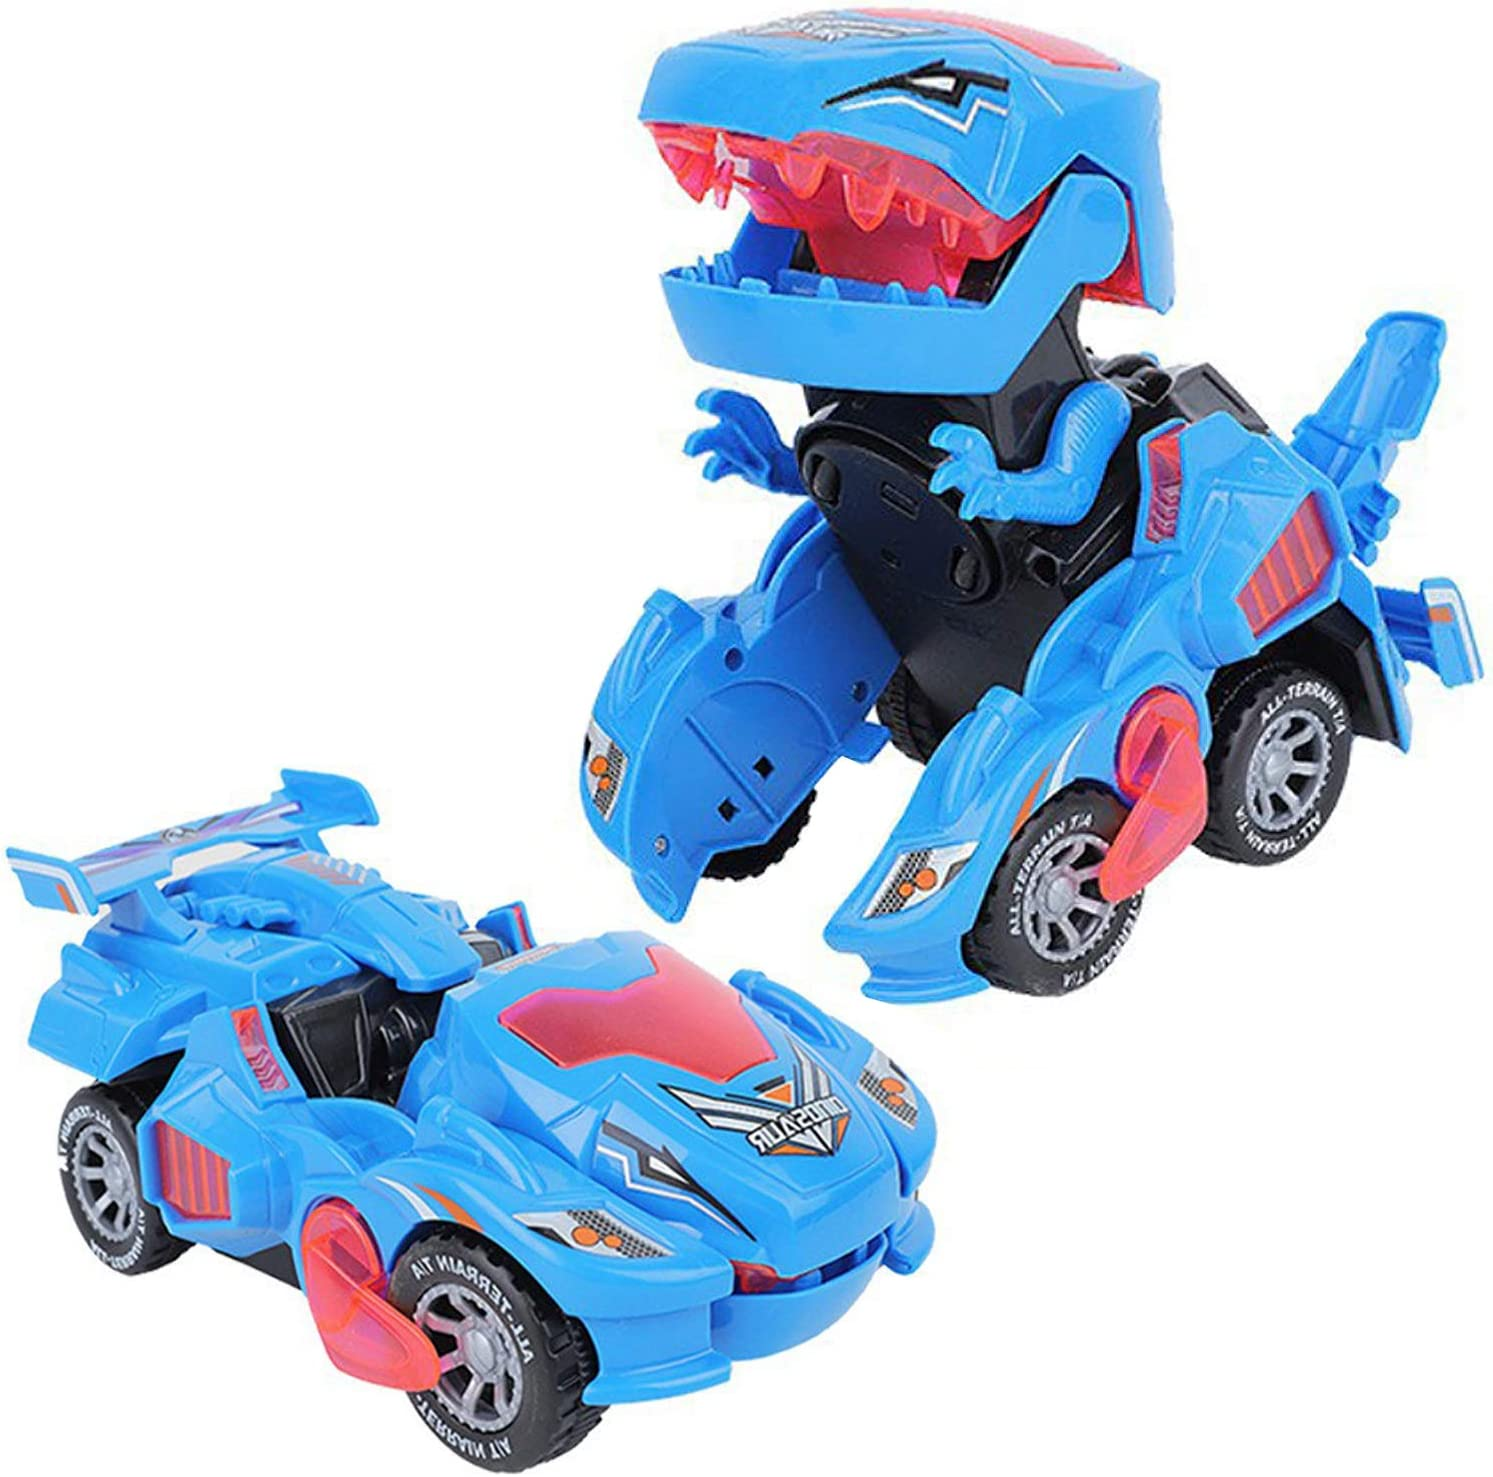 XILETAO 2 in 1 Transforming Dinosaur LED Car with Light and Music, T Rex Transformer Toys for 2 3 4 5 Year Old Boys, Christmas Birthday Gifts for Kids 3-5-7 (Blue)